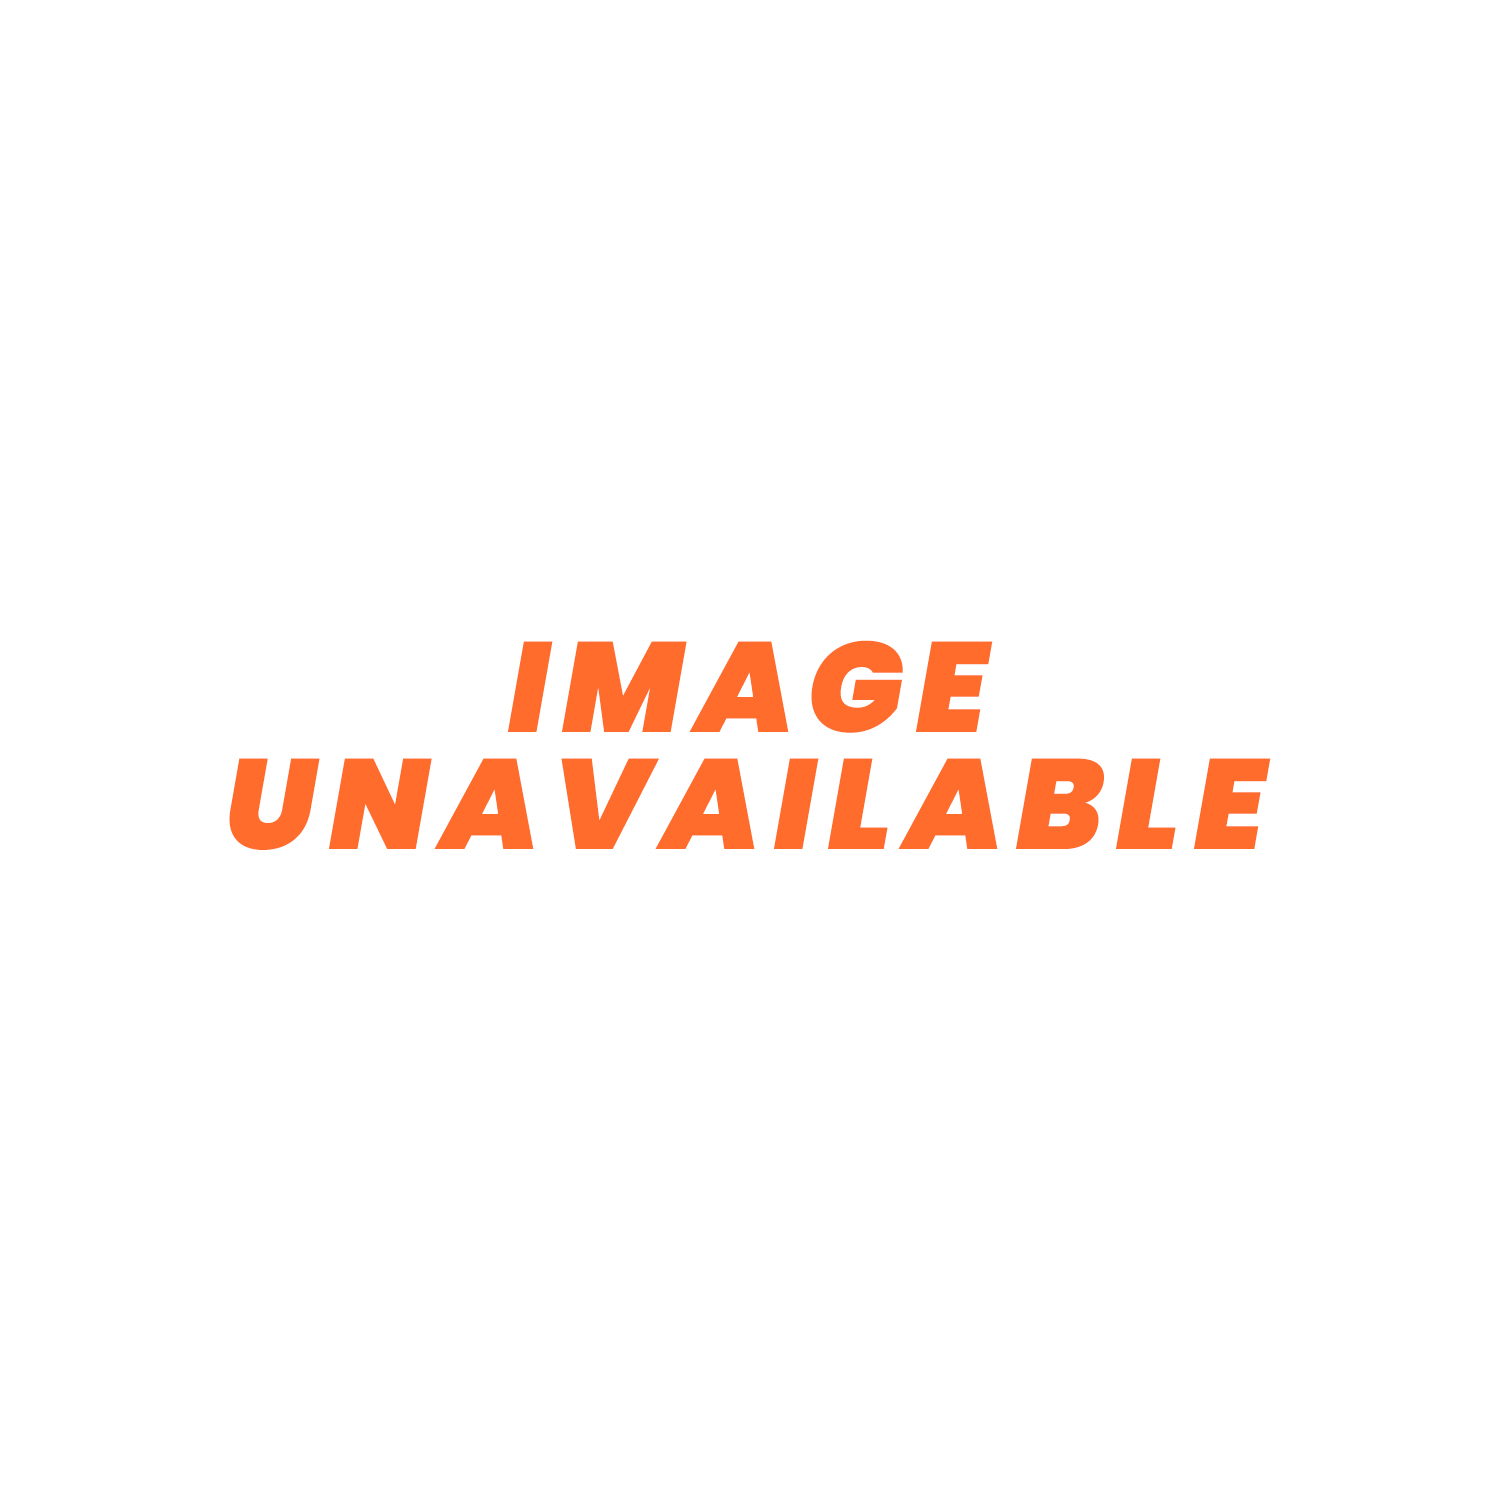 Sanden SD7H15 4271 155cc Compressor 2G 'A' Vertical 132mm 24v